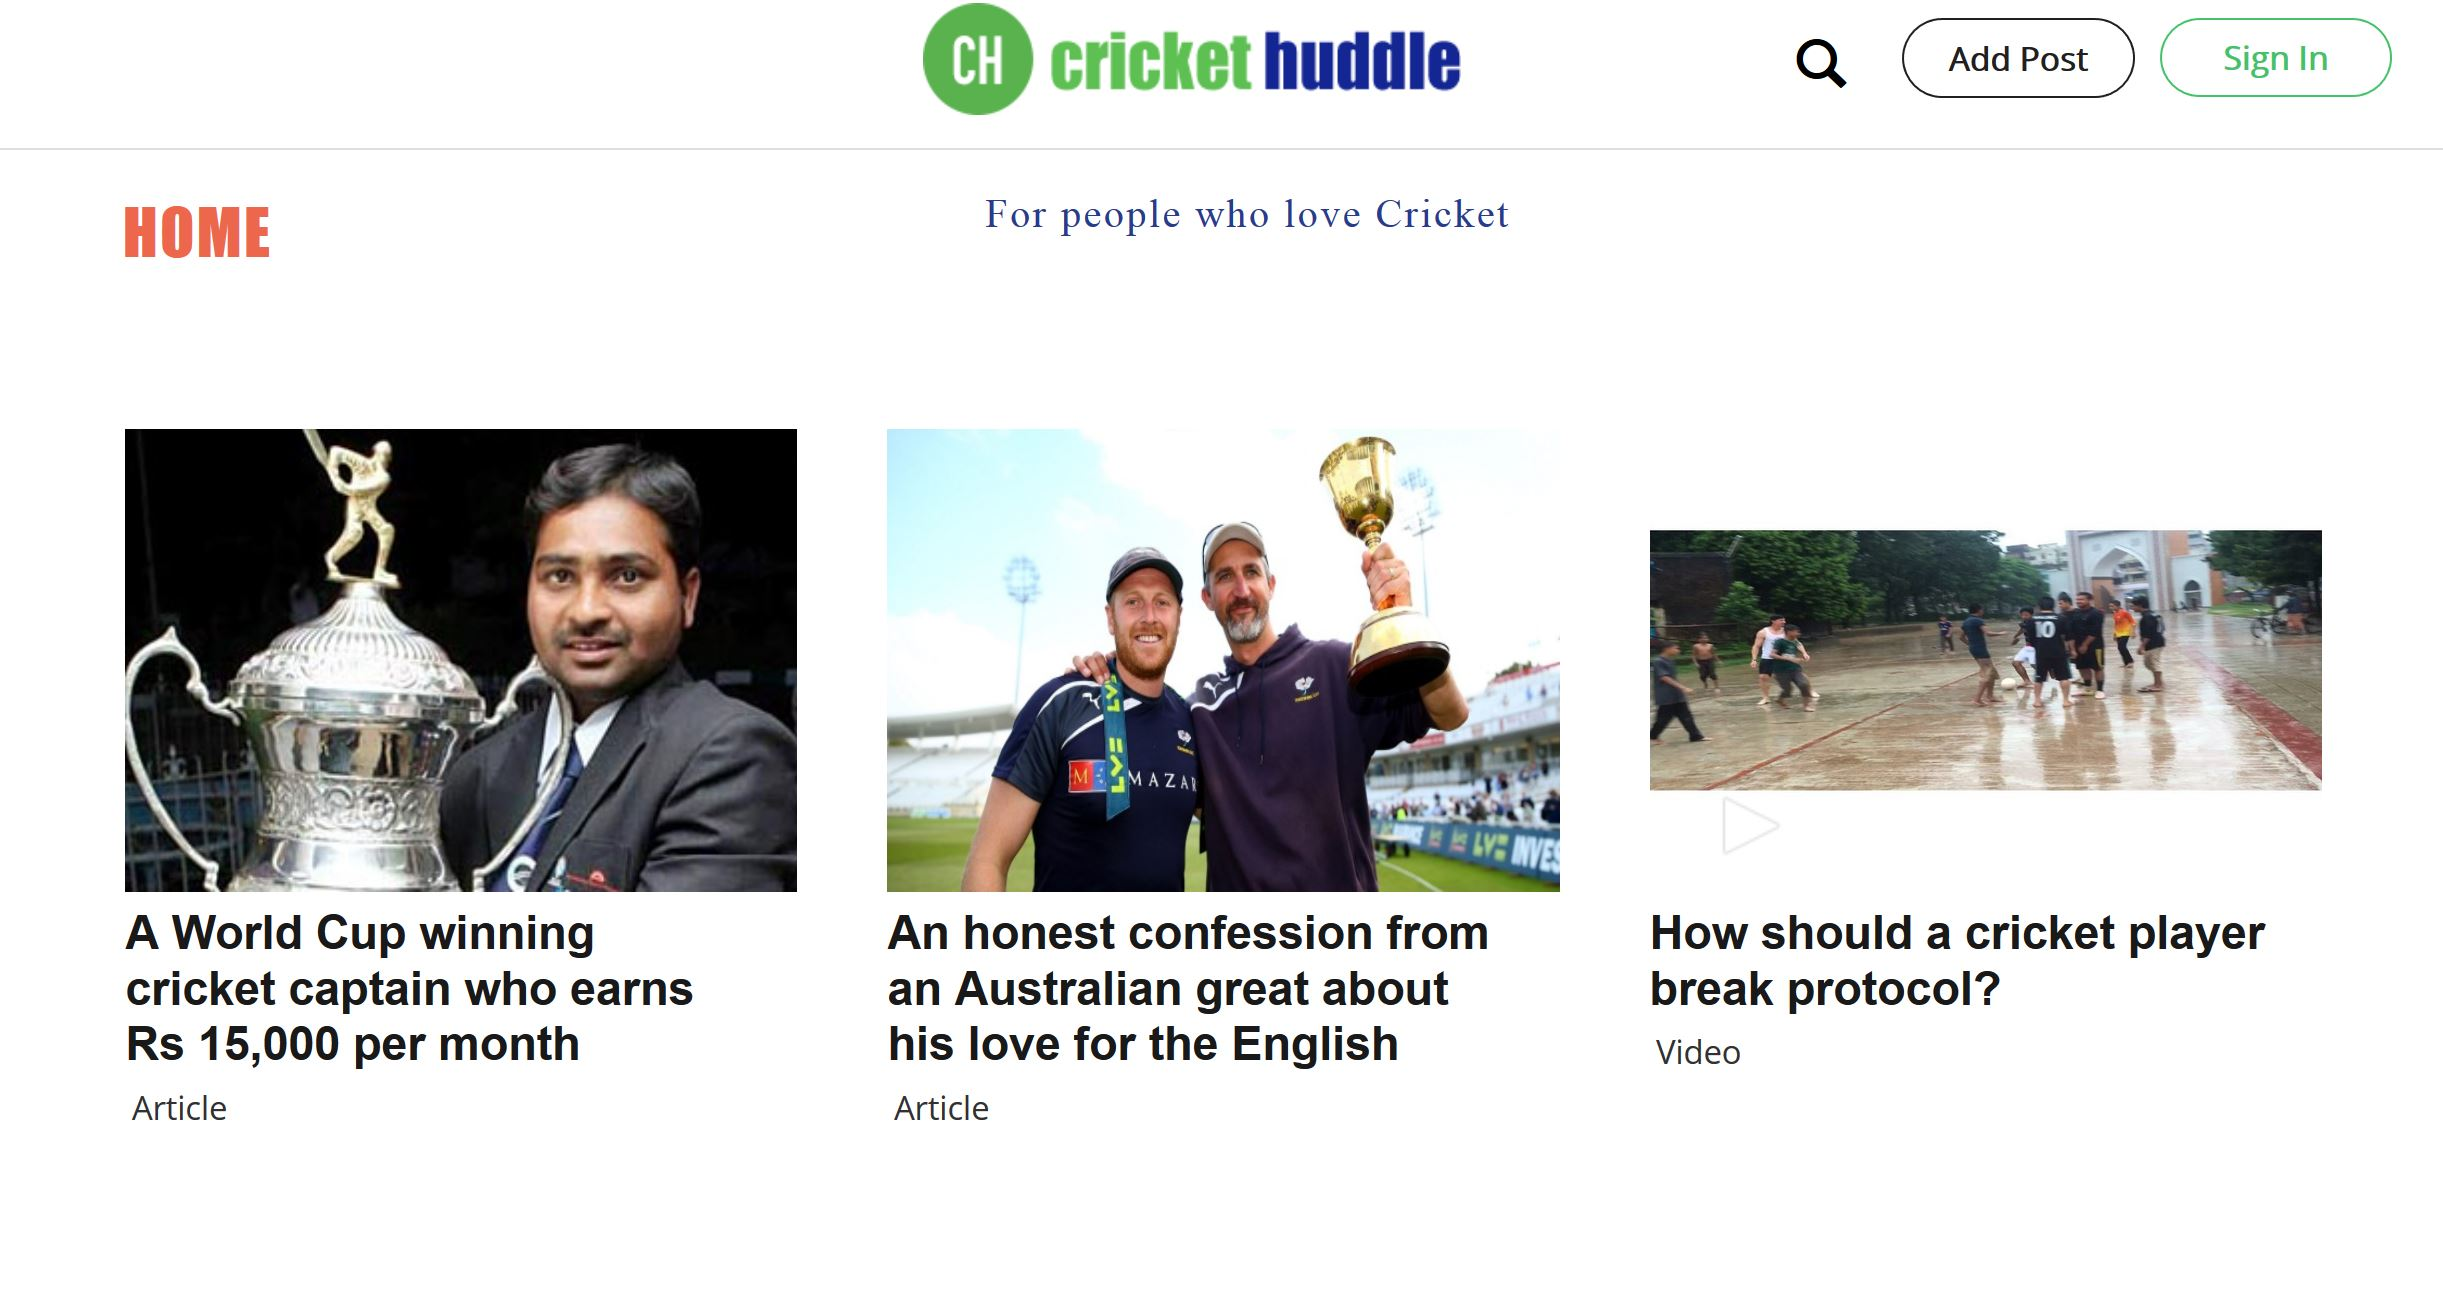 Cricket-huddle-2